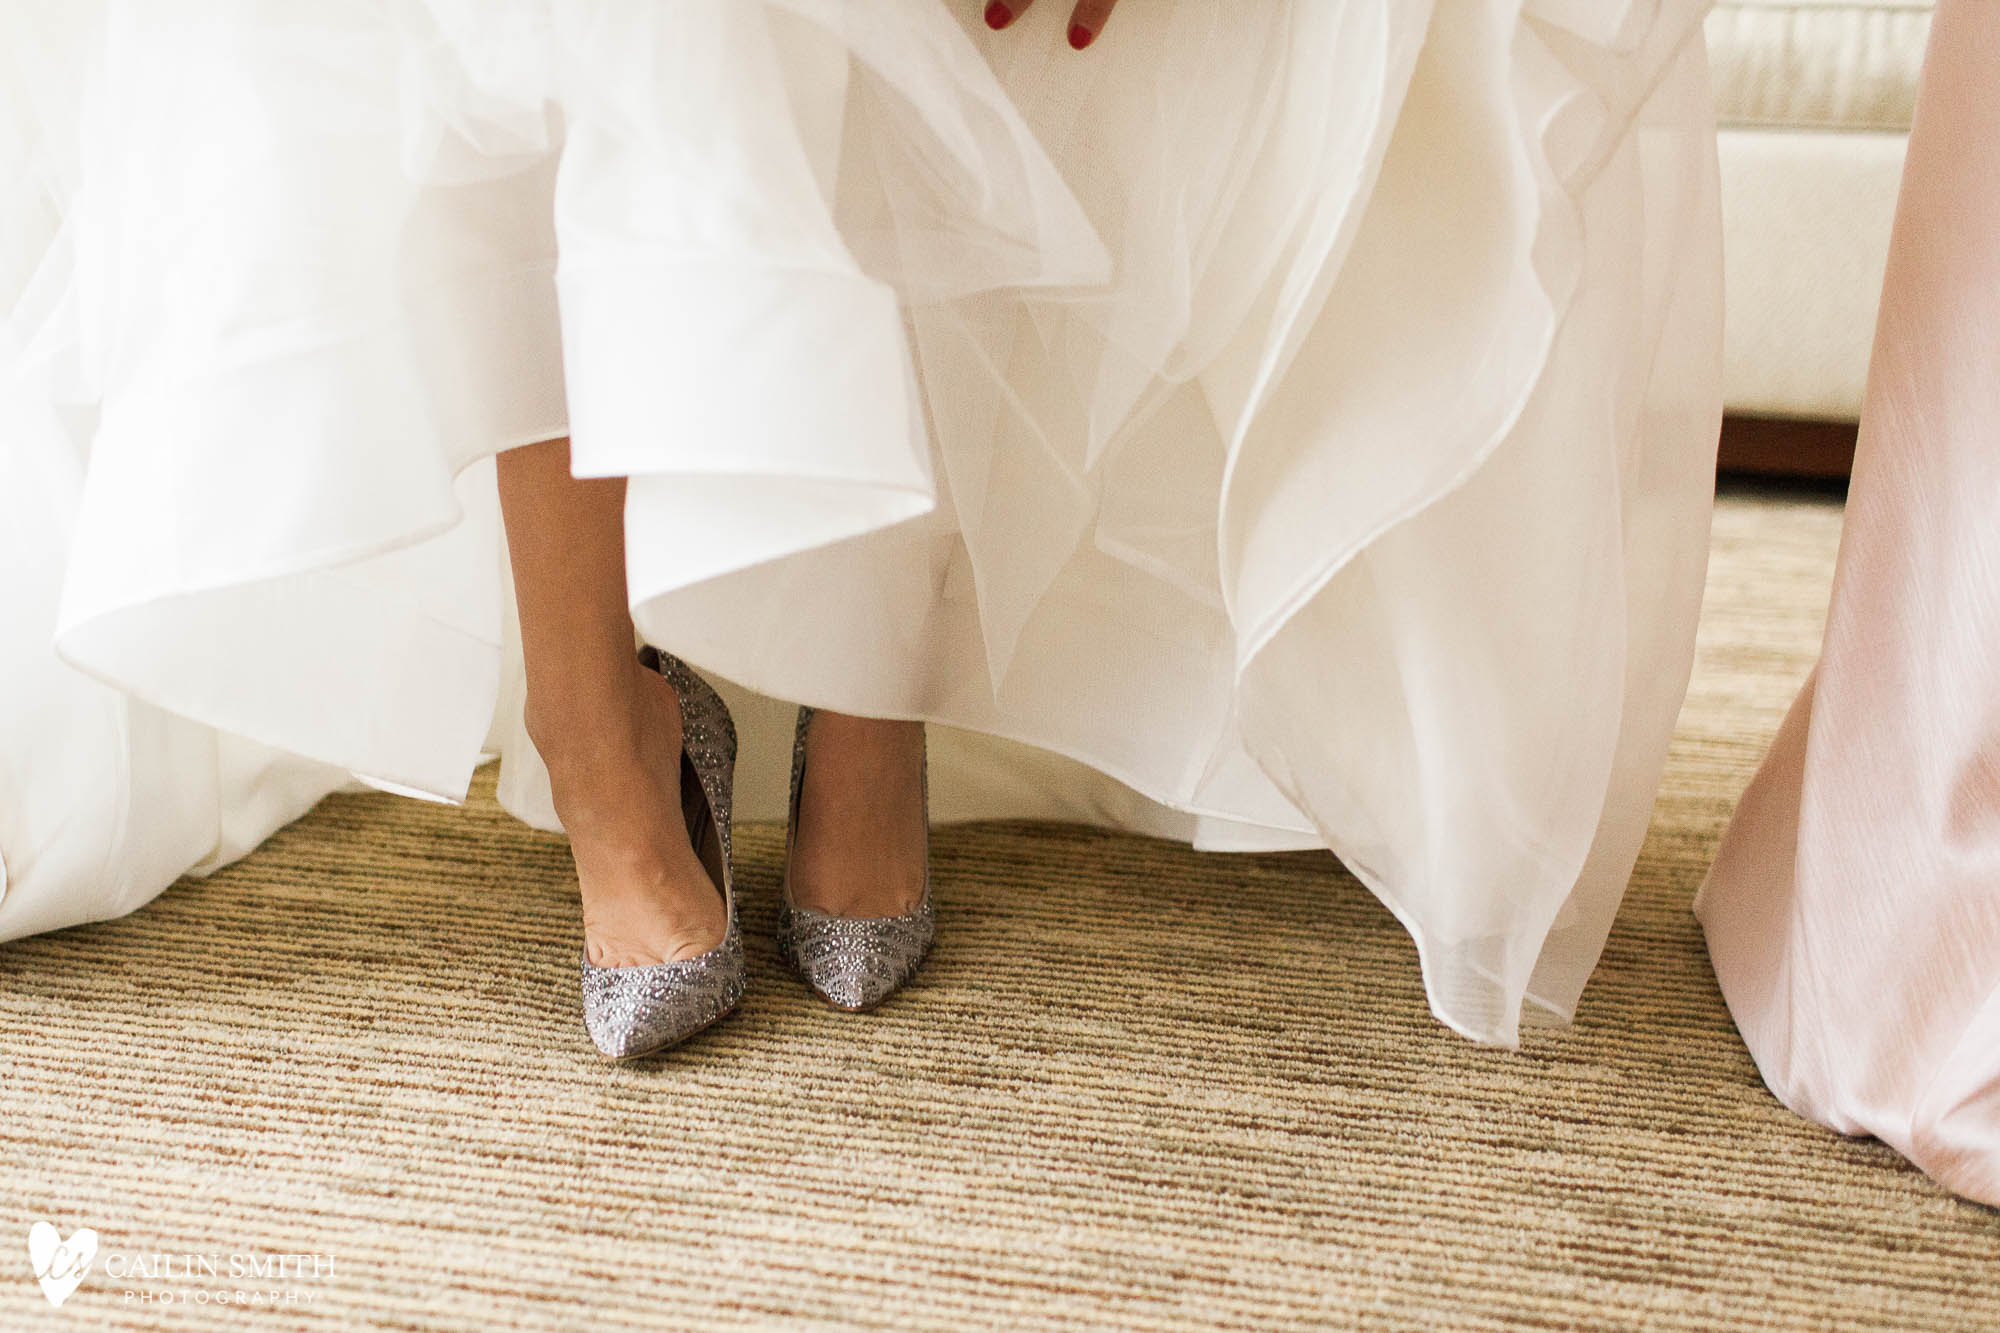 Hallie_Ari_Ritz_Carlton_Amelia_Island_Wedding_Photography_0010.jpg